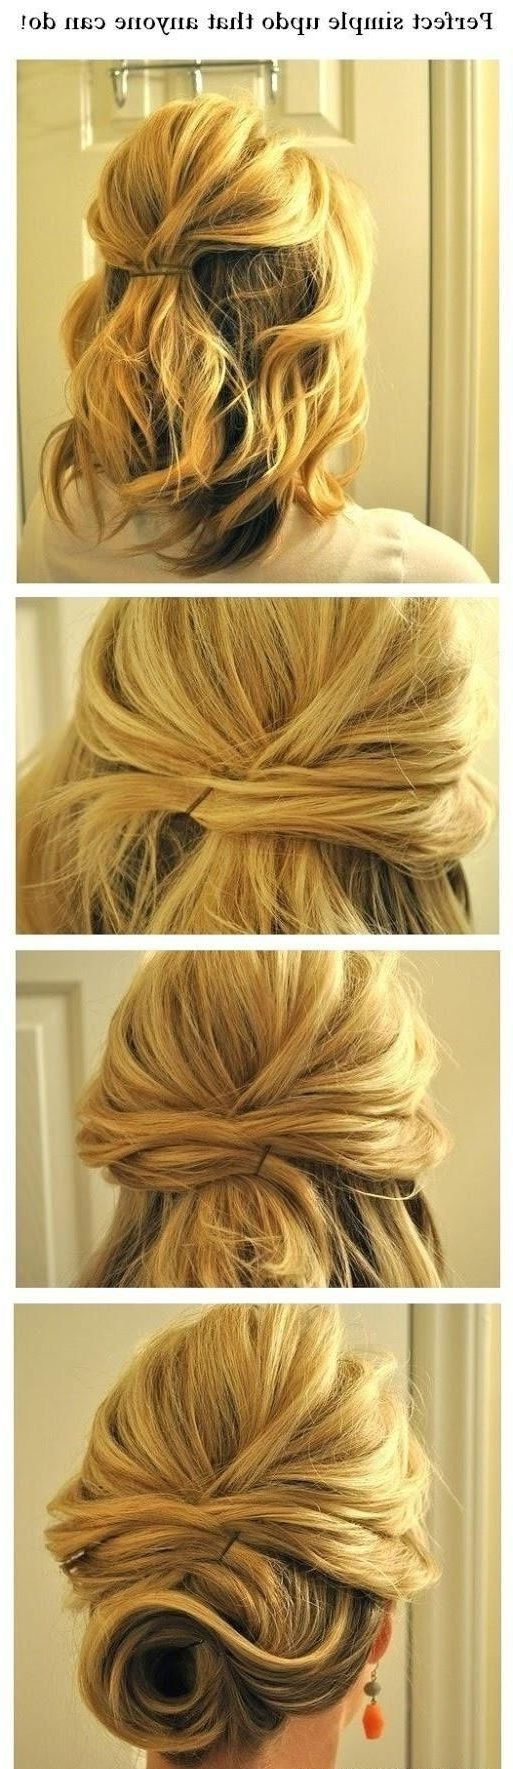 Most Popular Simple Wedding Hairstyles For Shoulder Length Hair With 15 Cute And Easy Hairstyle Tutorials For Medium Length Hair – Gurl (View 12 of 15)